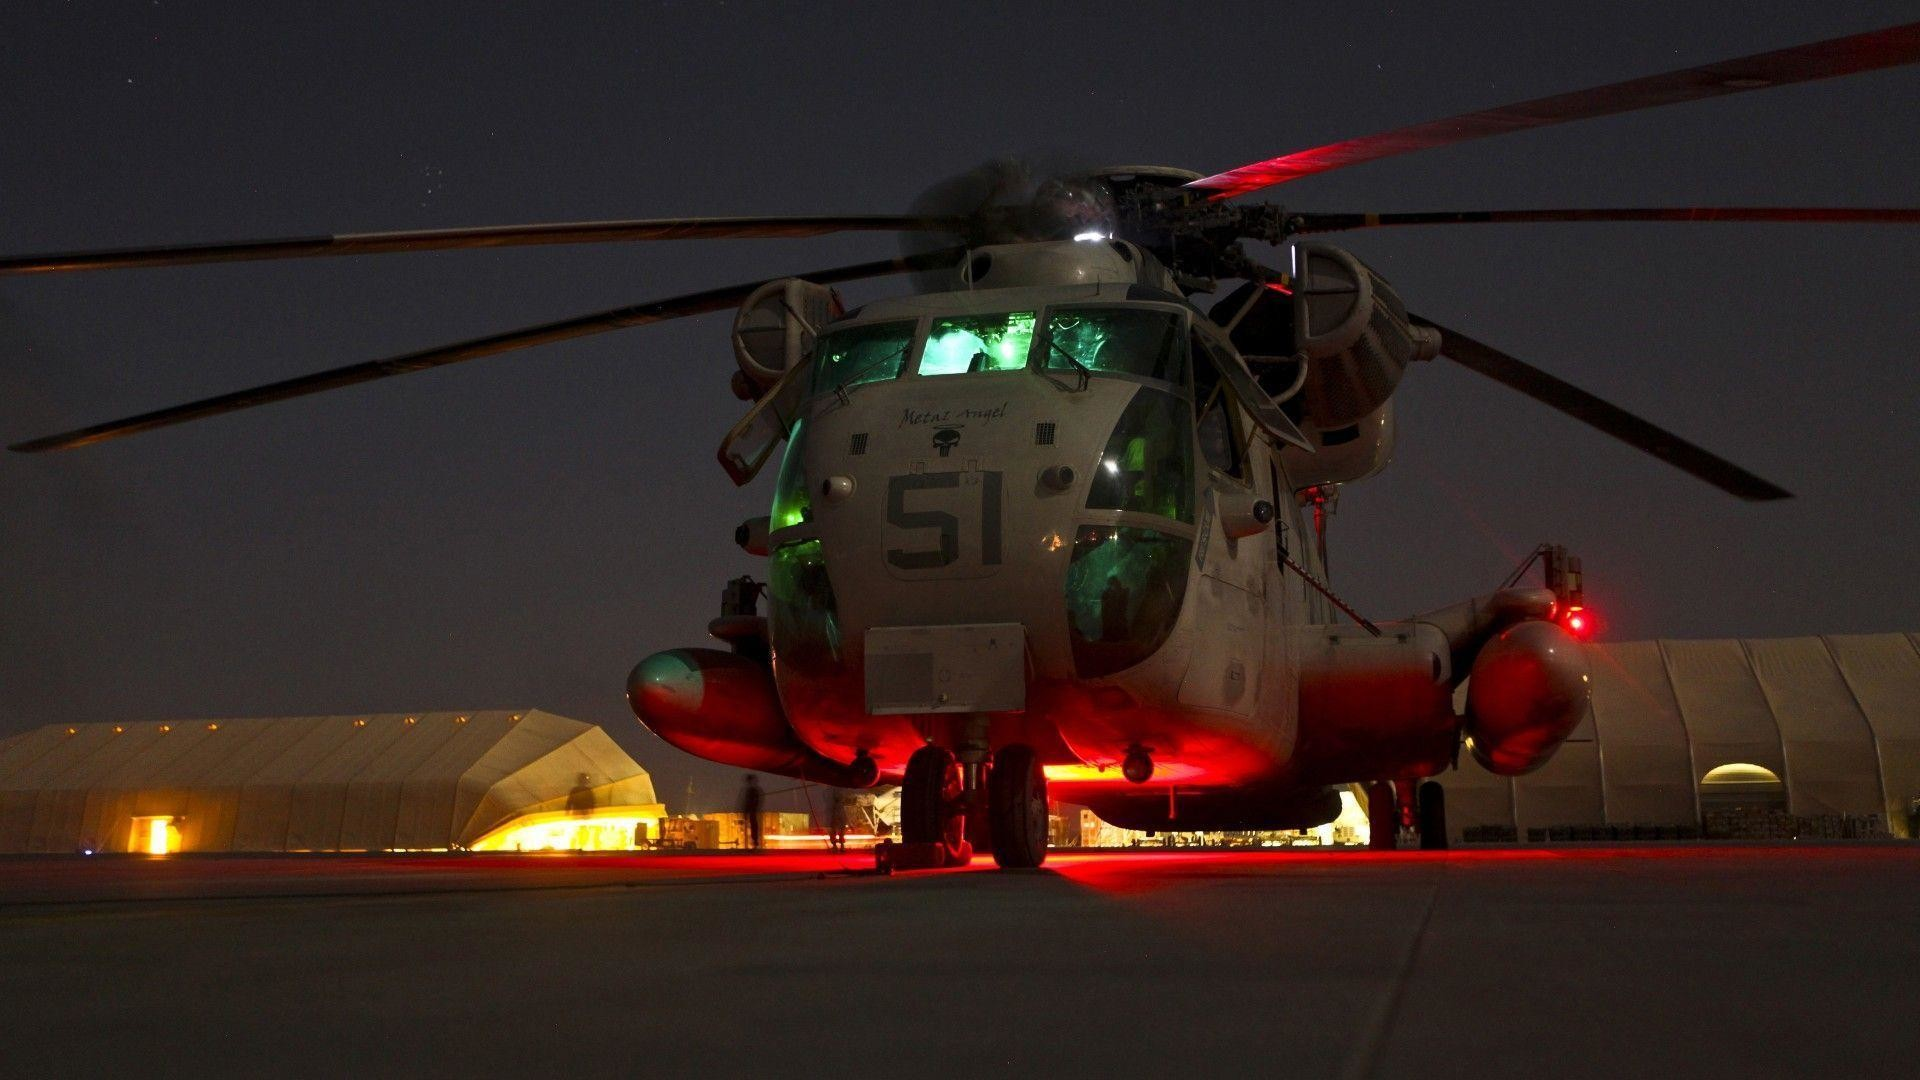 Night Helicopter Marine Corps United States Wallpapers | HD .